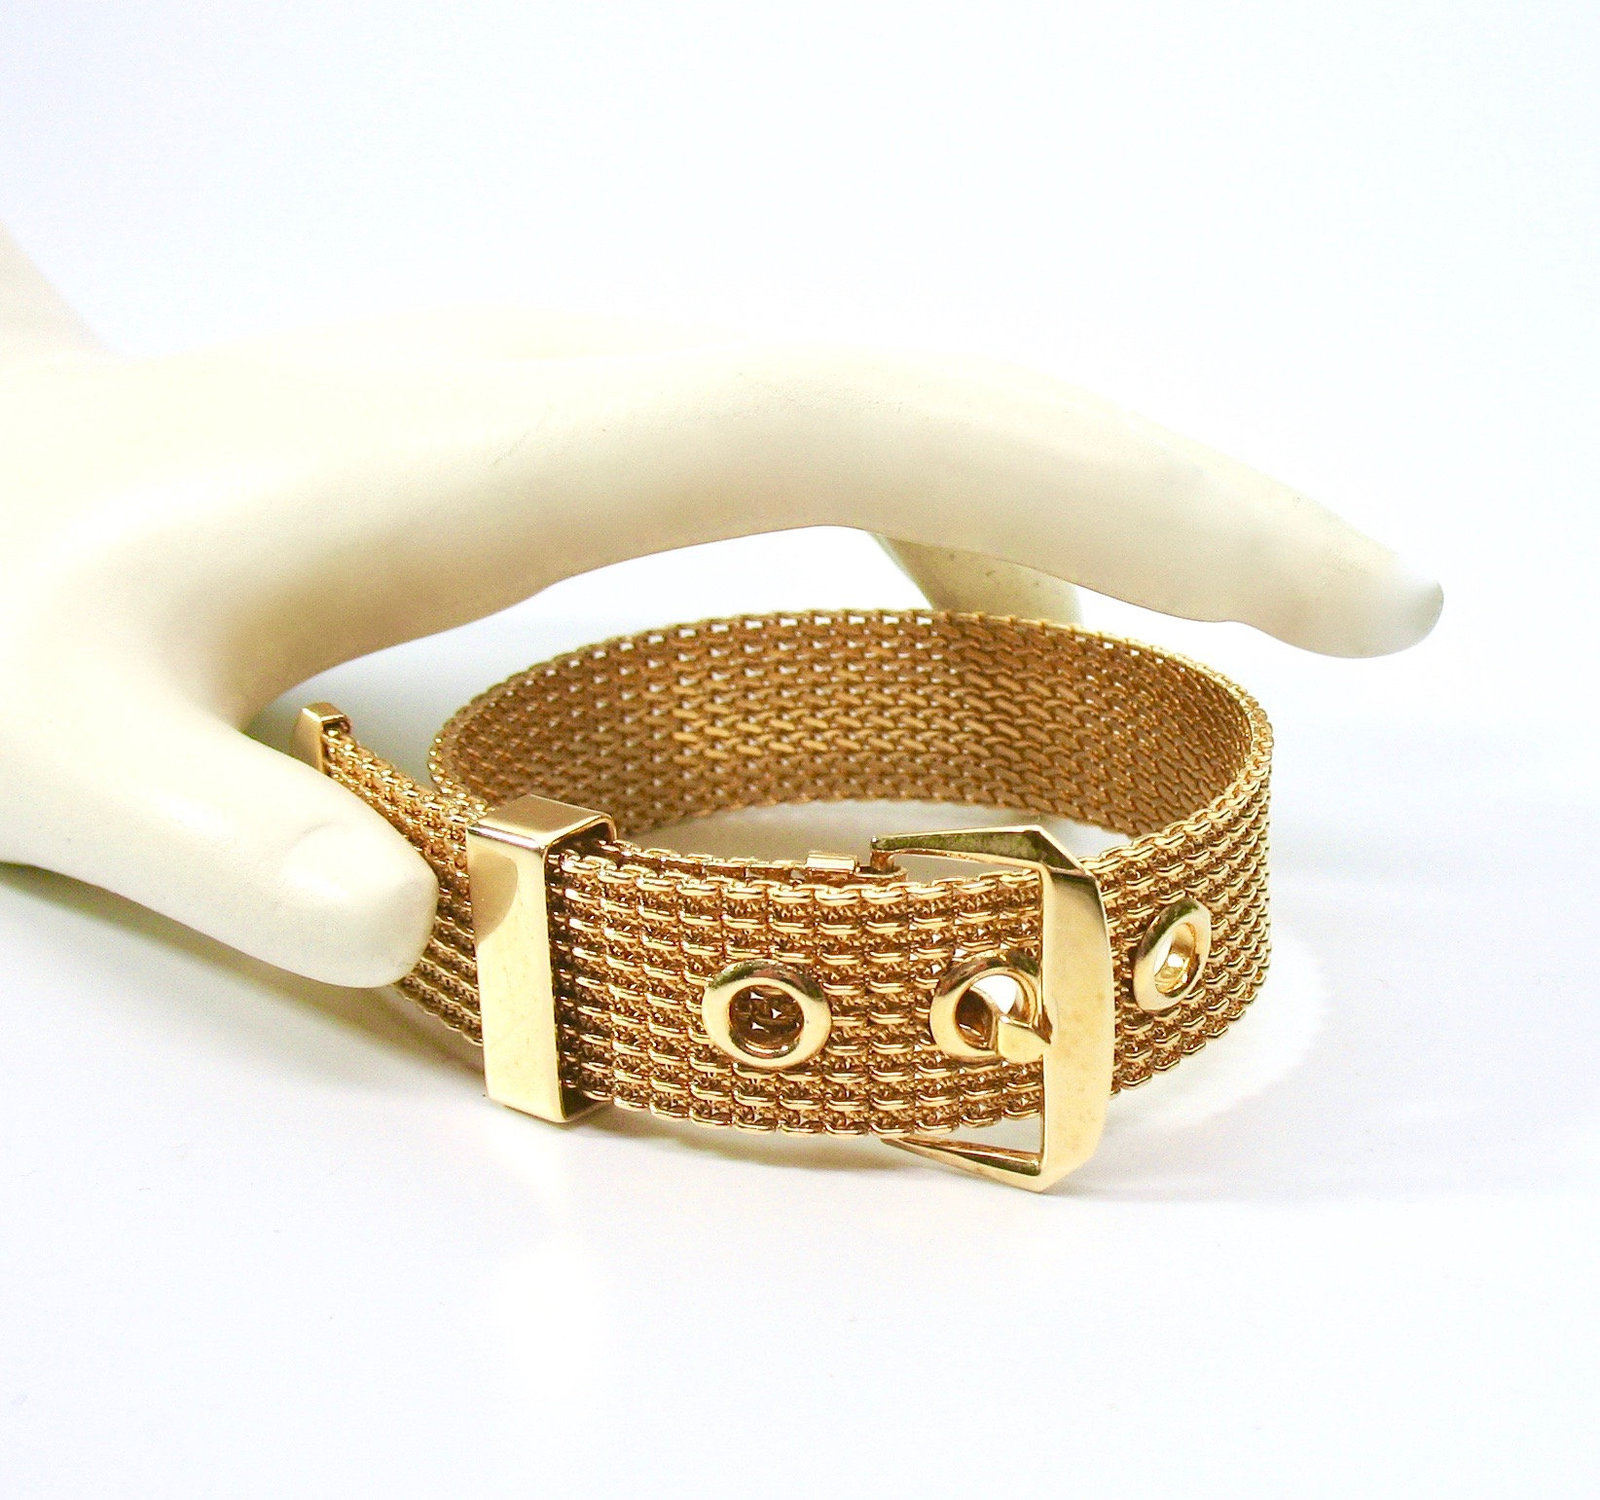 Mesh Buckle Bracelet, Gold Tone, Avon, 1970's, Adjustable, Signed Collectible, D